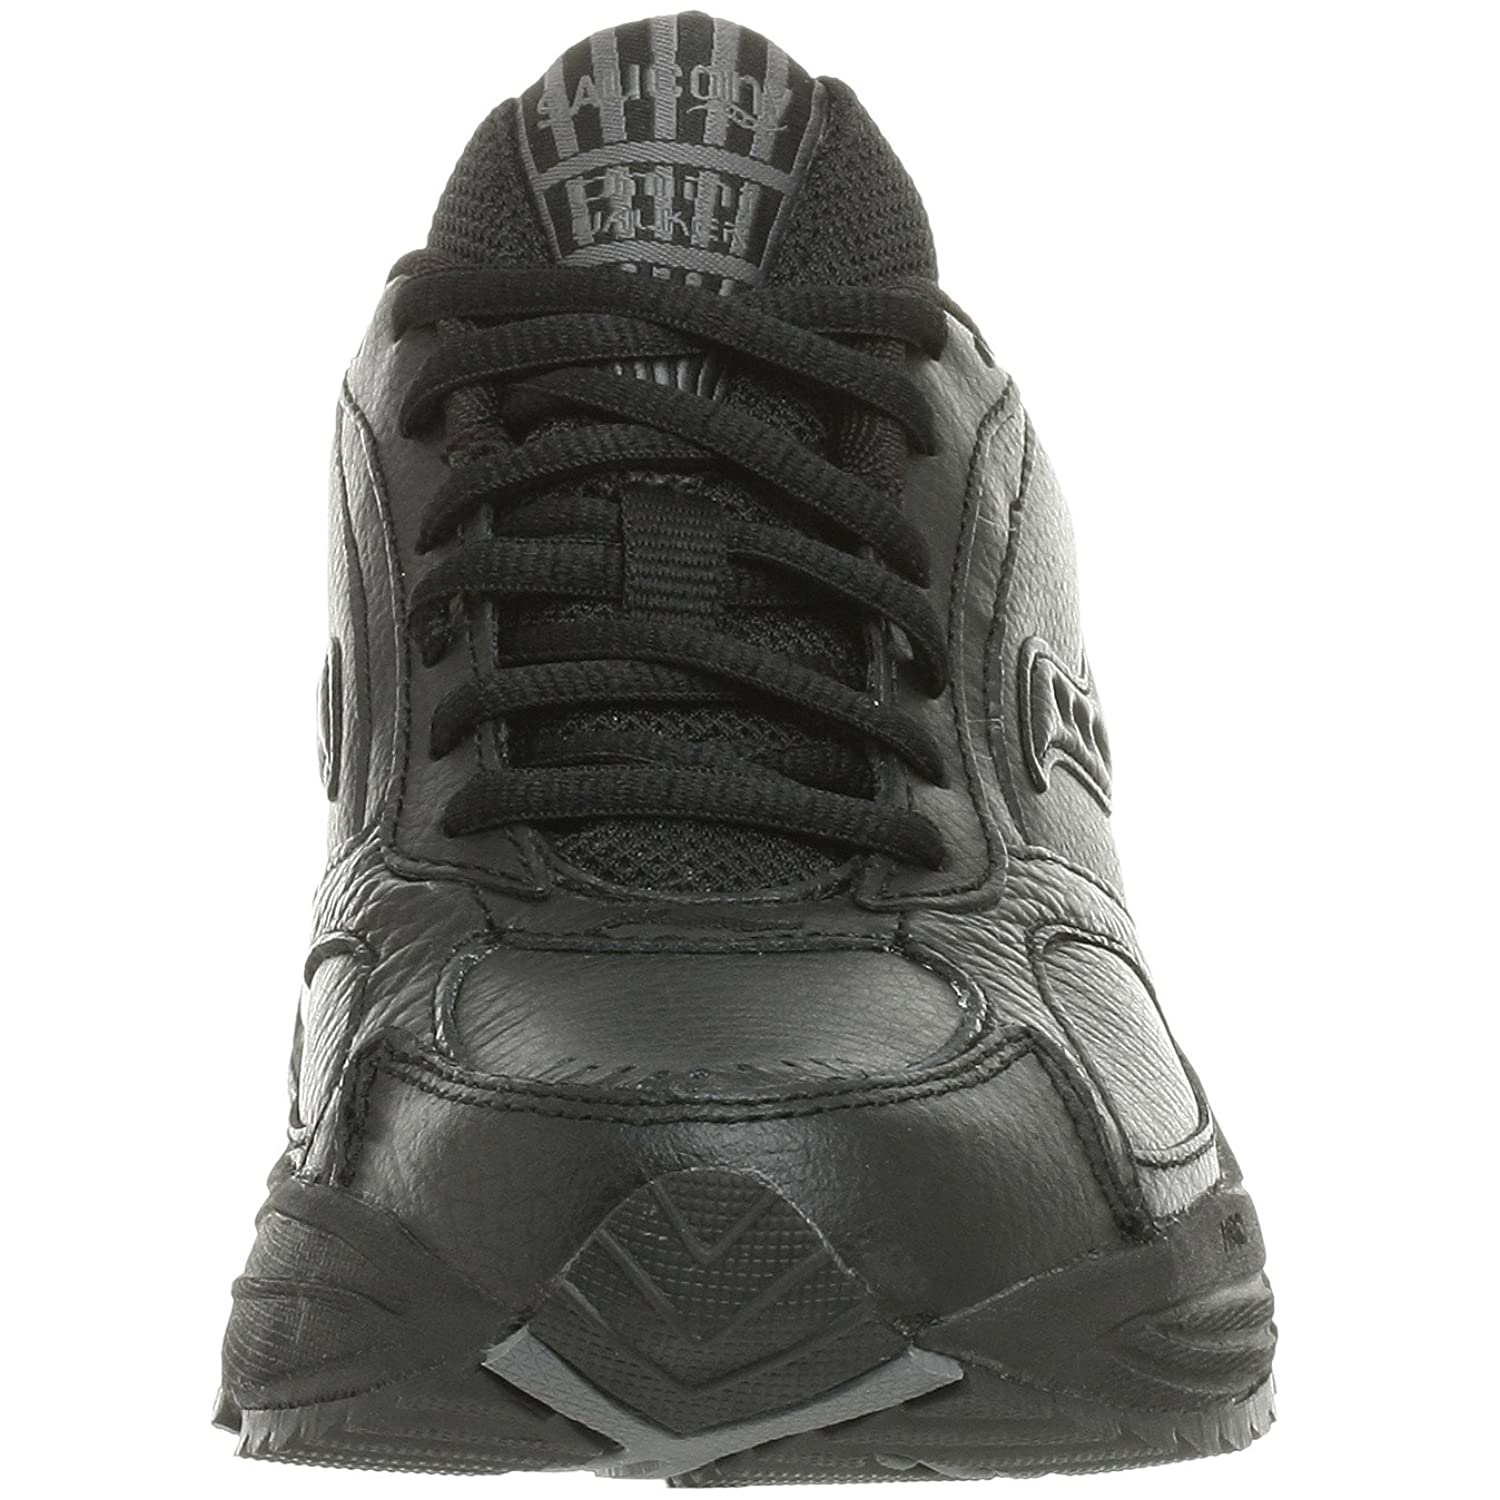 Saucony Womens Omni Walker Leather Low Top Lace Up Walking Shoes:  Amazon.co.uk: Shoes & Bags